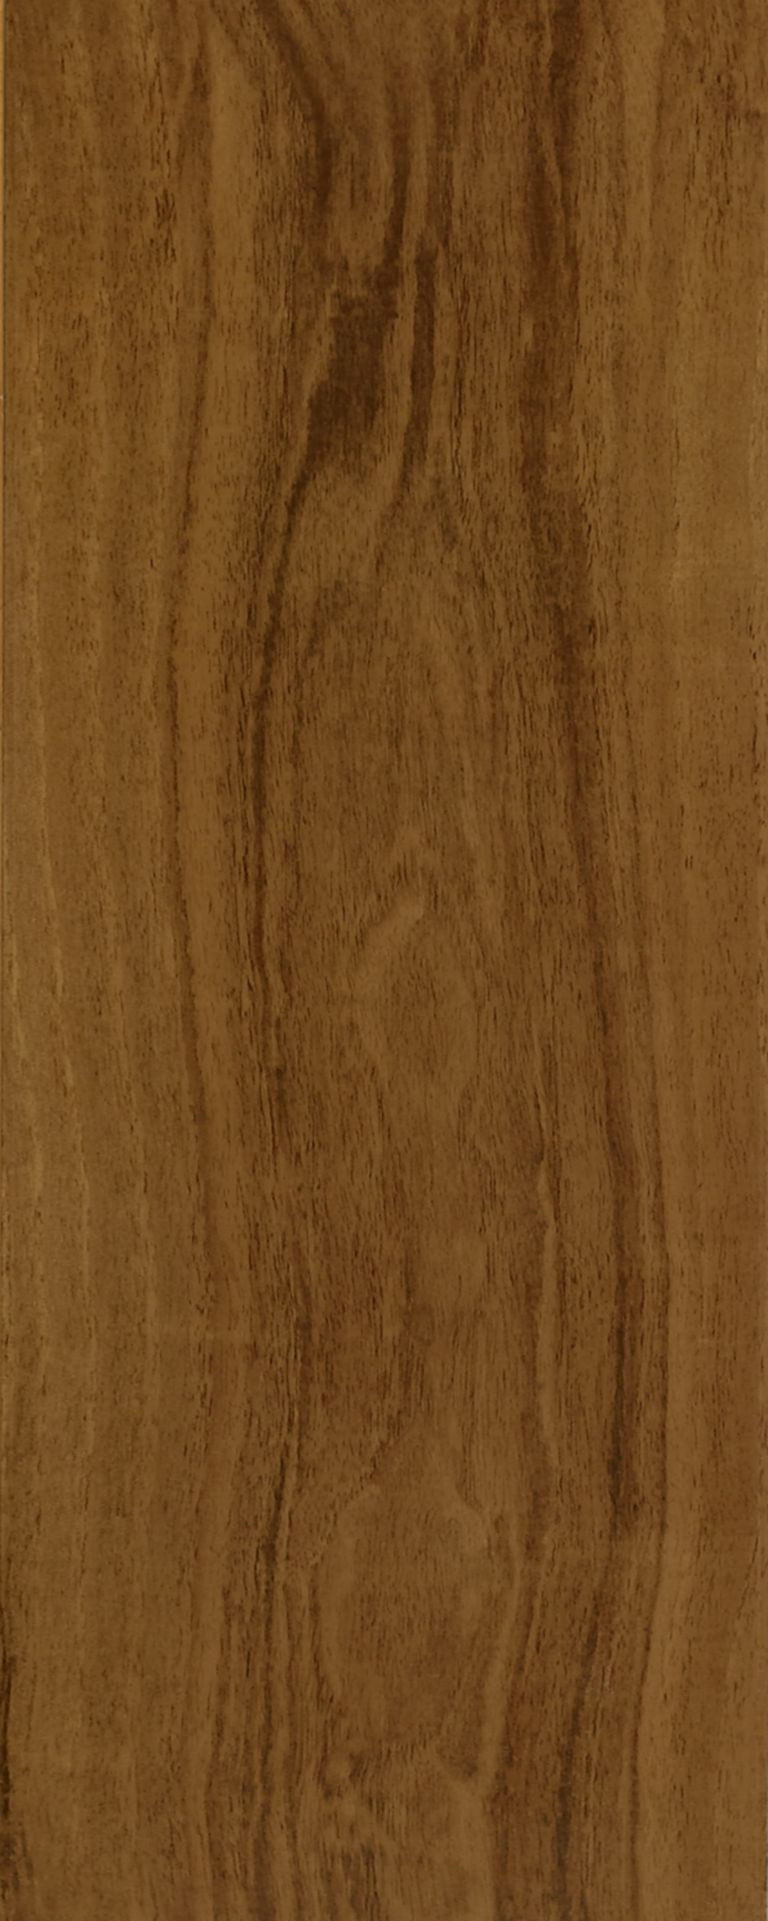 Walnut Ridge - Vintage Brown Luxury Vinyl A6841